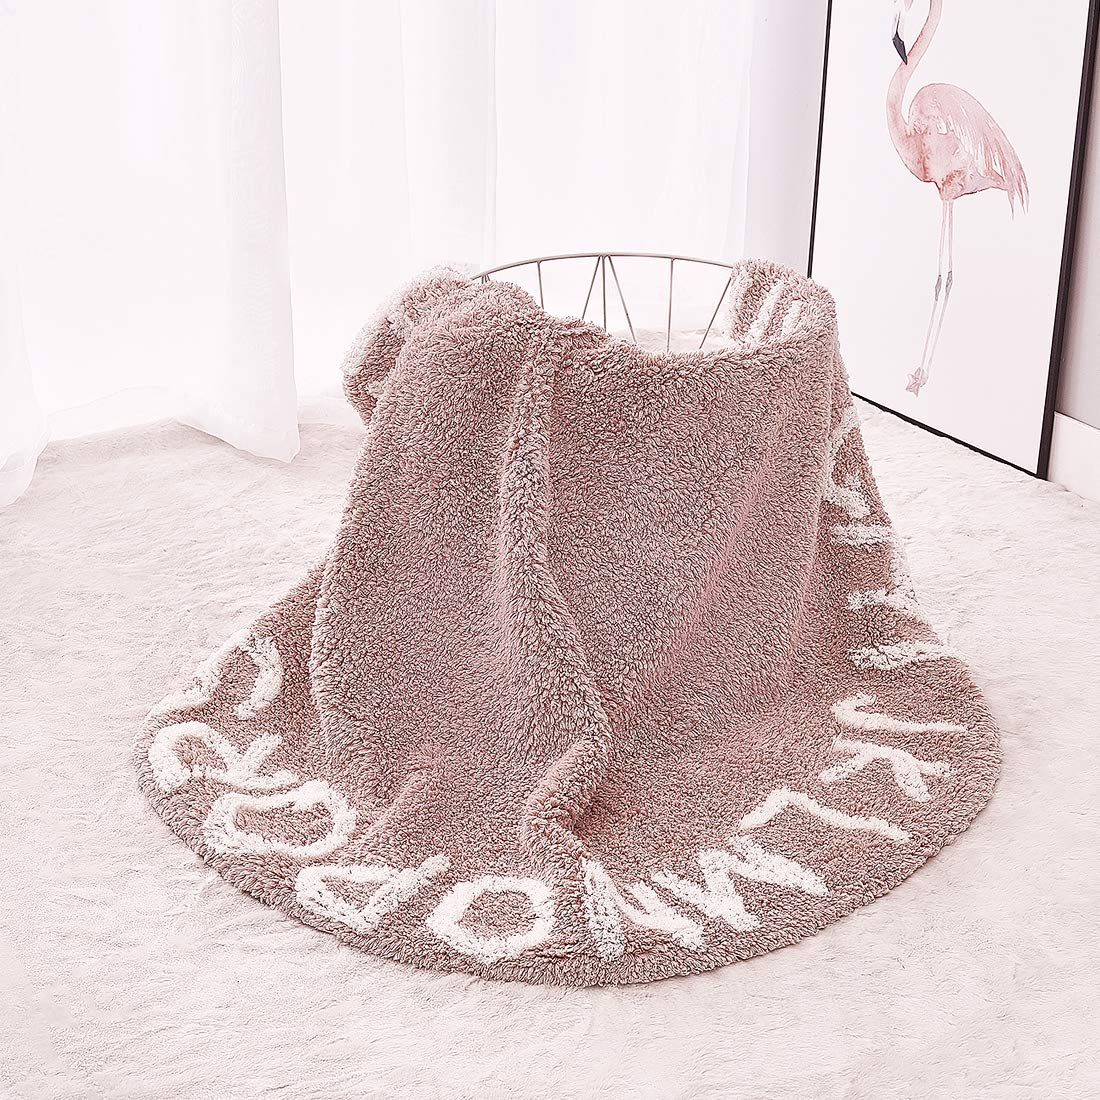 Pink Habudda Super Soft Cotton Luxury Plush Baby Crawling Rugs Kids Play Mat Educational ABC Alphabet Area Rugs Baby Shower Gift Kids Teepee Tent Game Play House Round 1.2 meters 47.24 inch Diameter